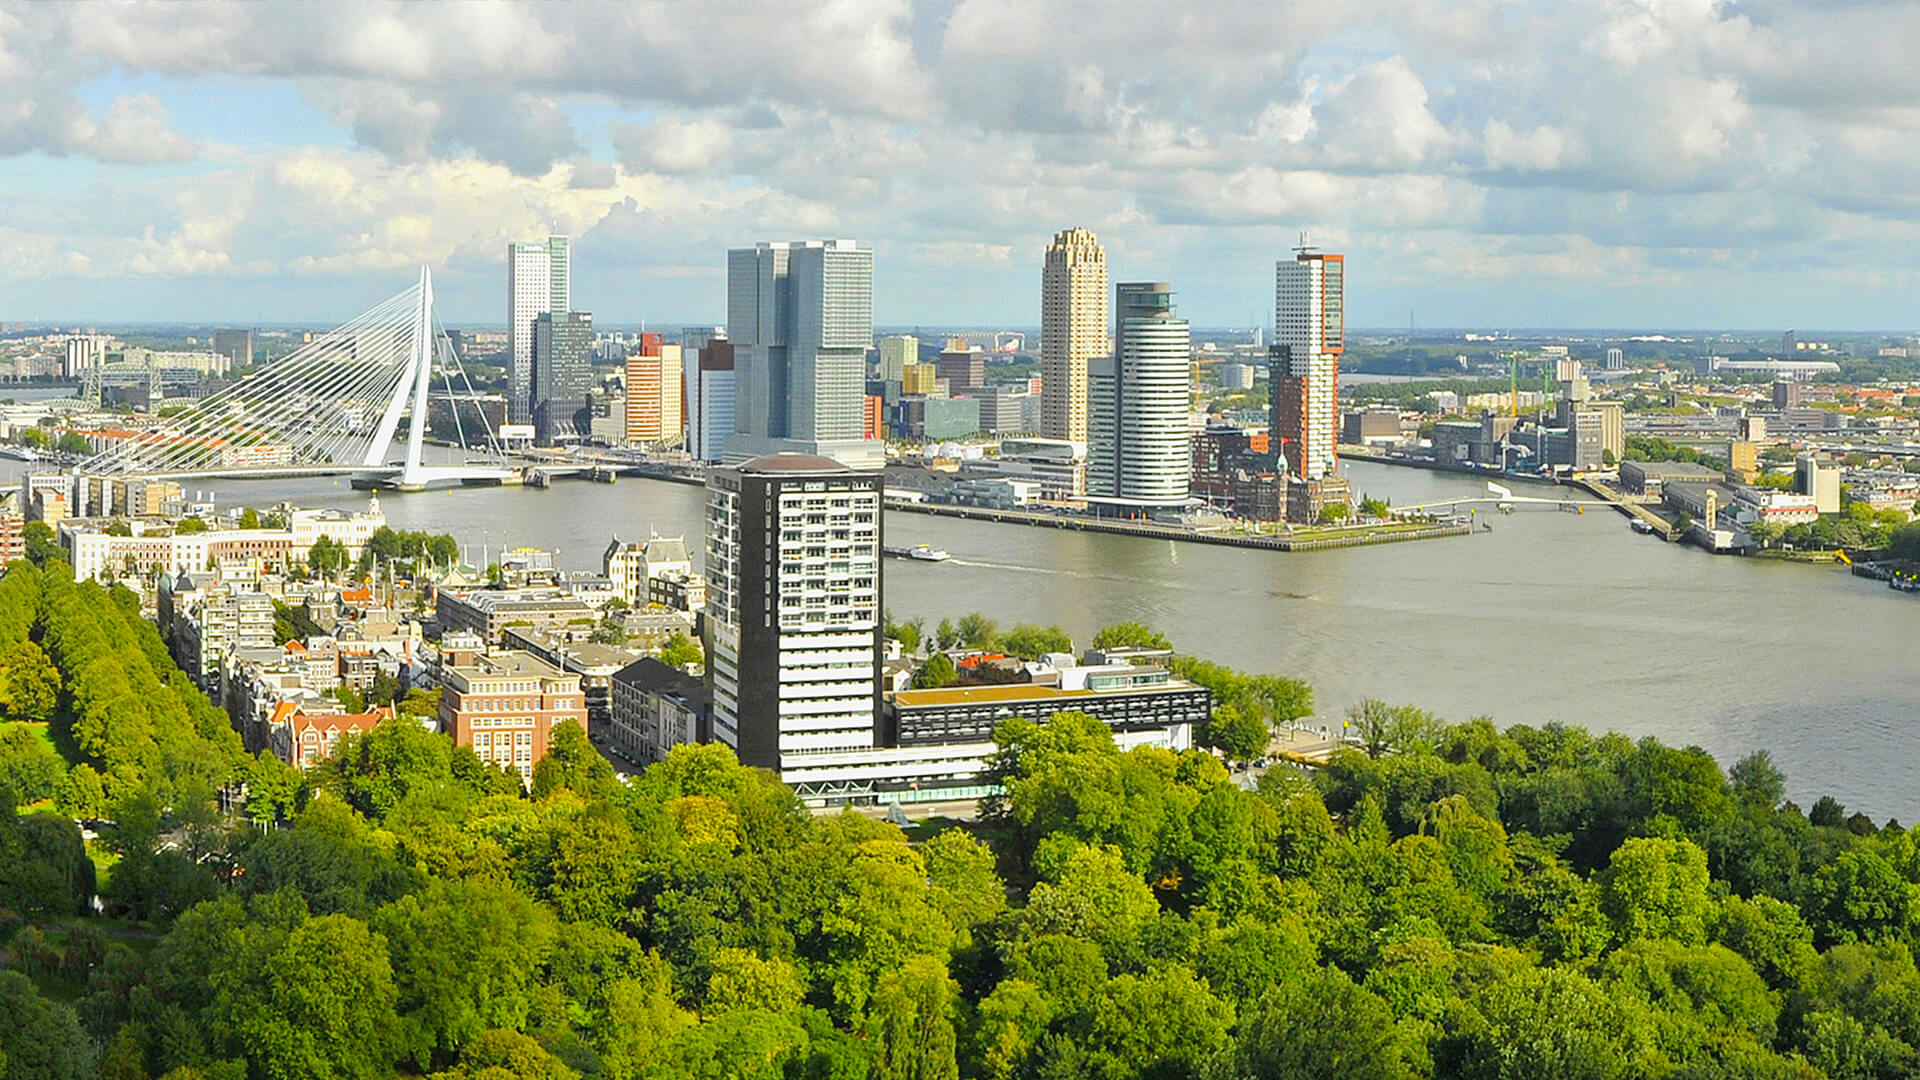 Rotterdam Internet Exchange